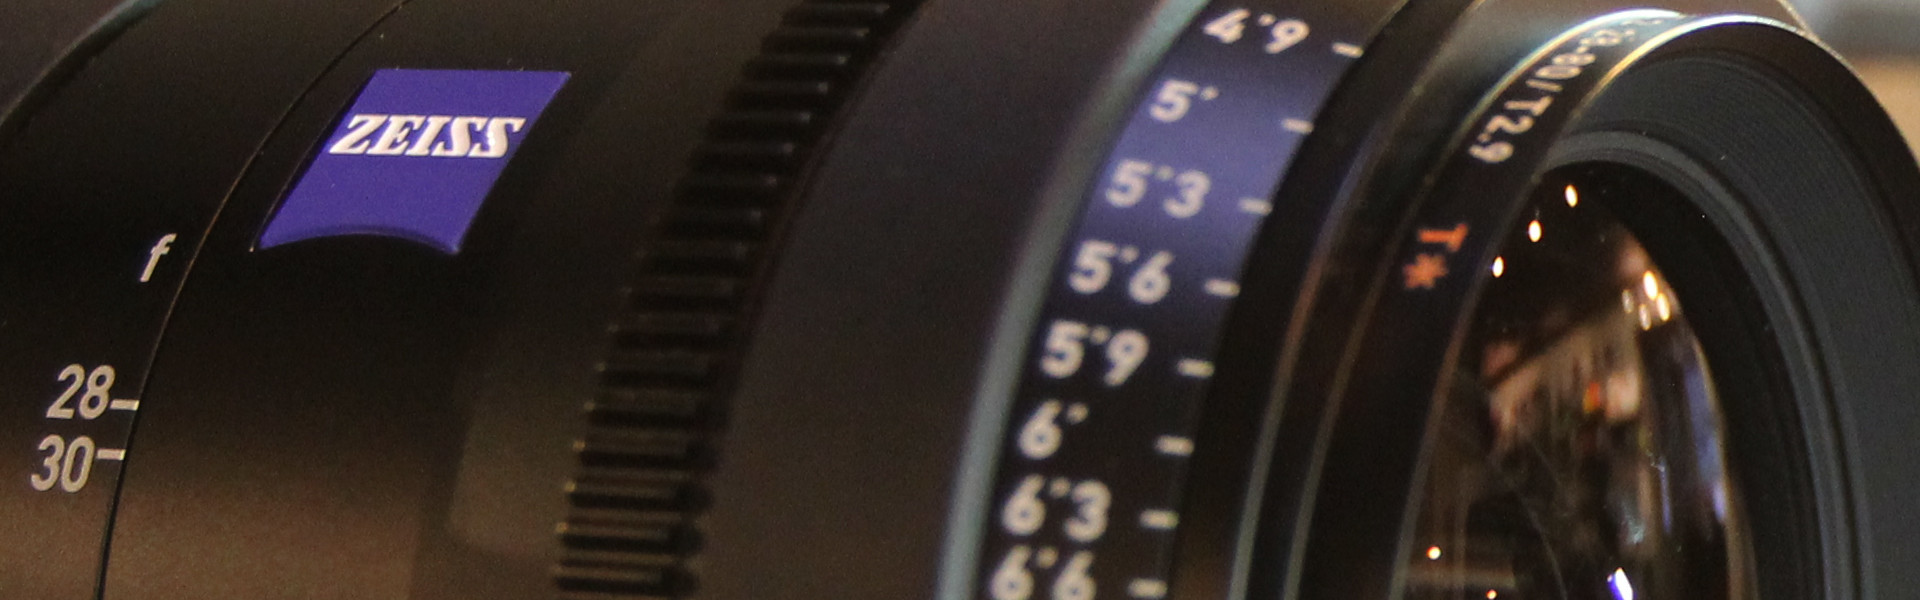 "Header image for article Testing Zeiss Compact Primes on ""The Bicycle"""